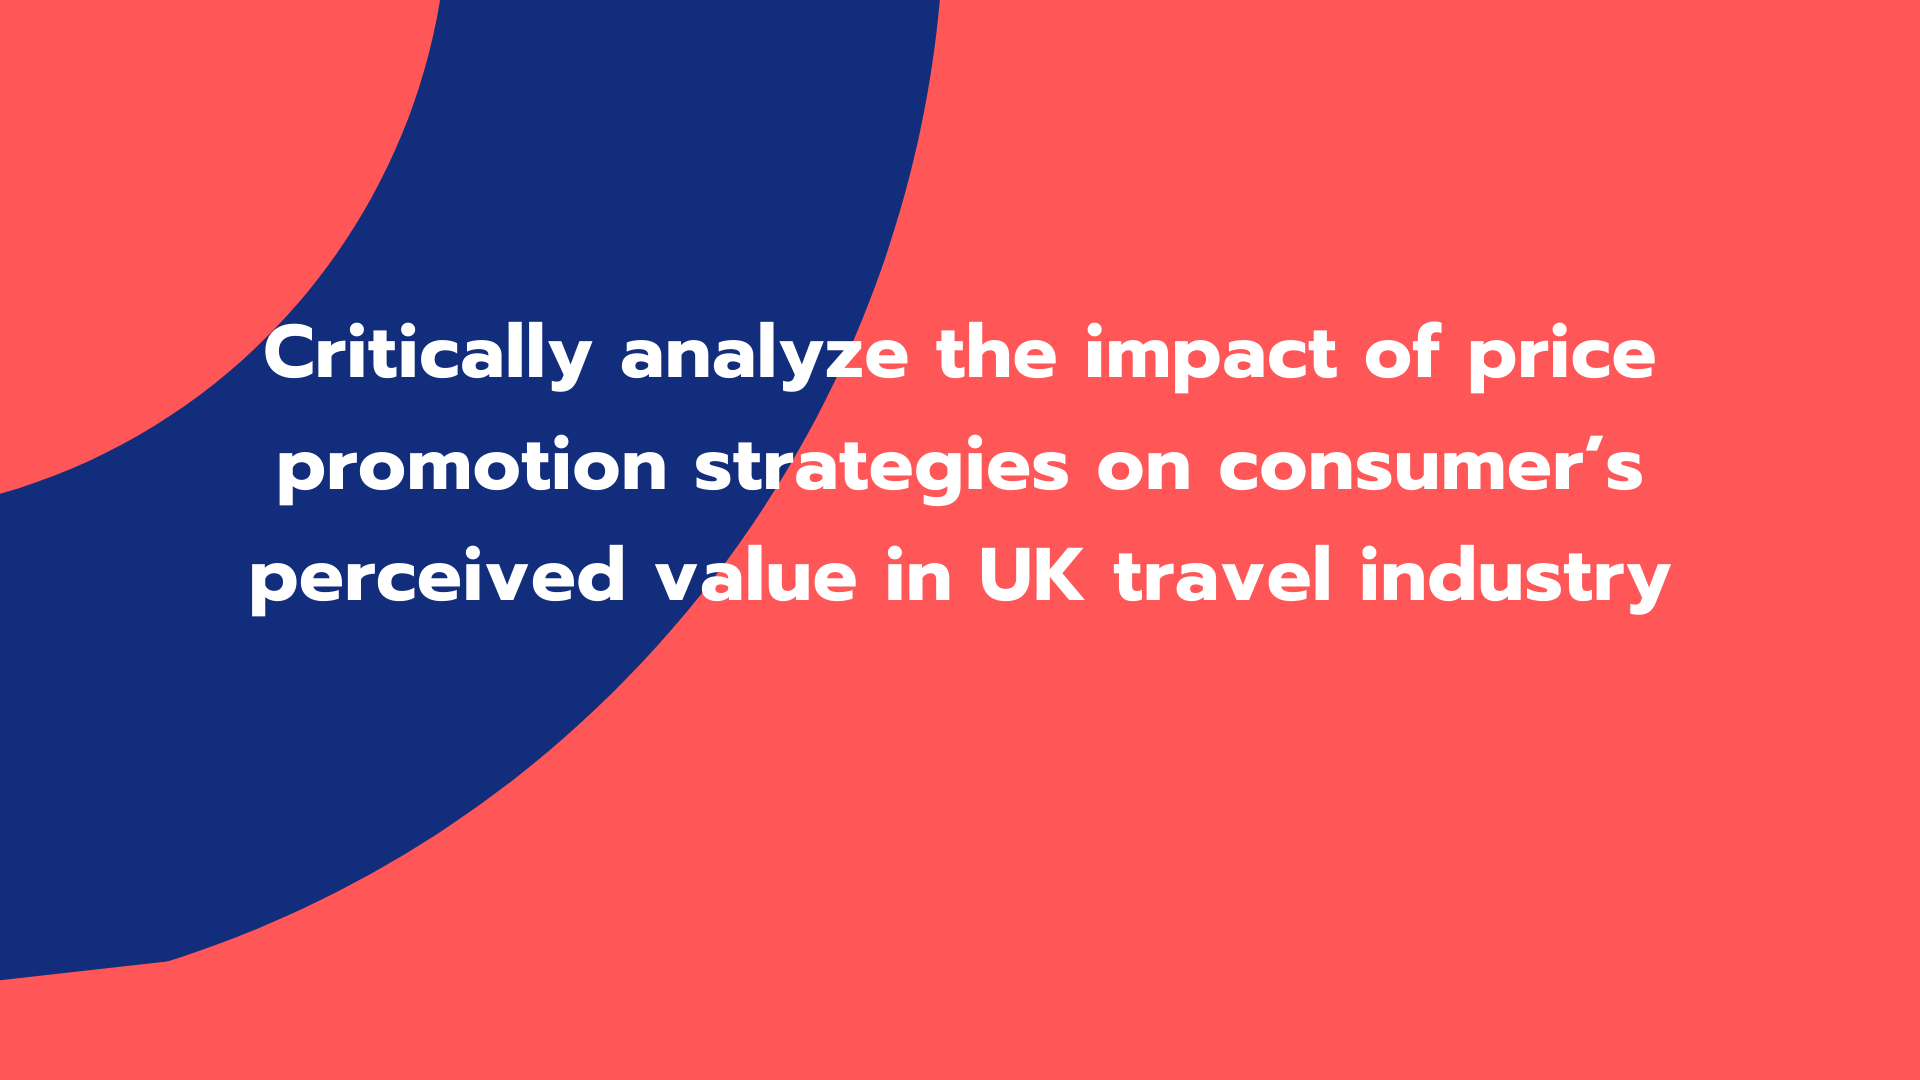 Critically analyze the impact of price promotion strategies on consumer's perceived value in UK travel industry